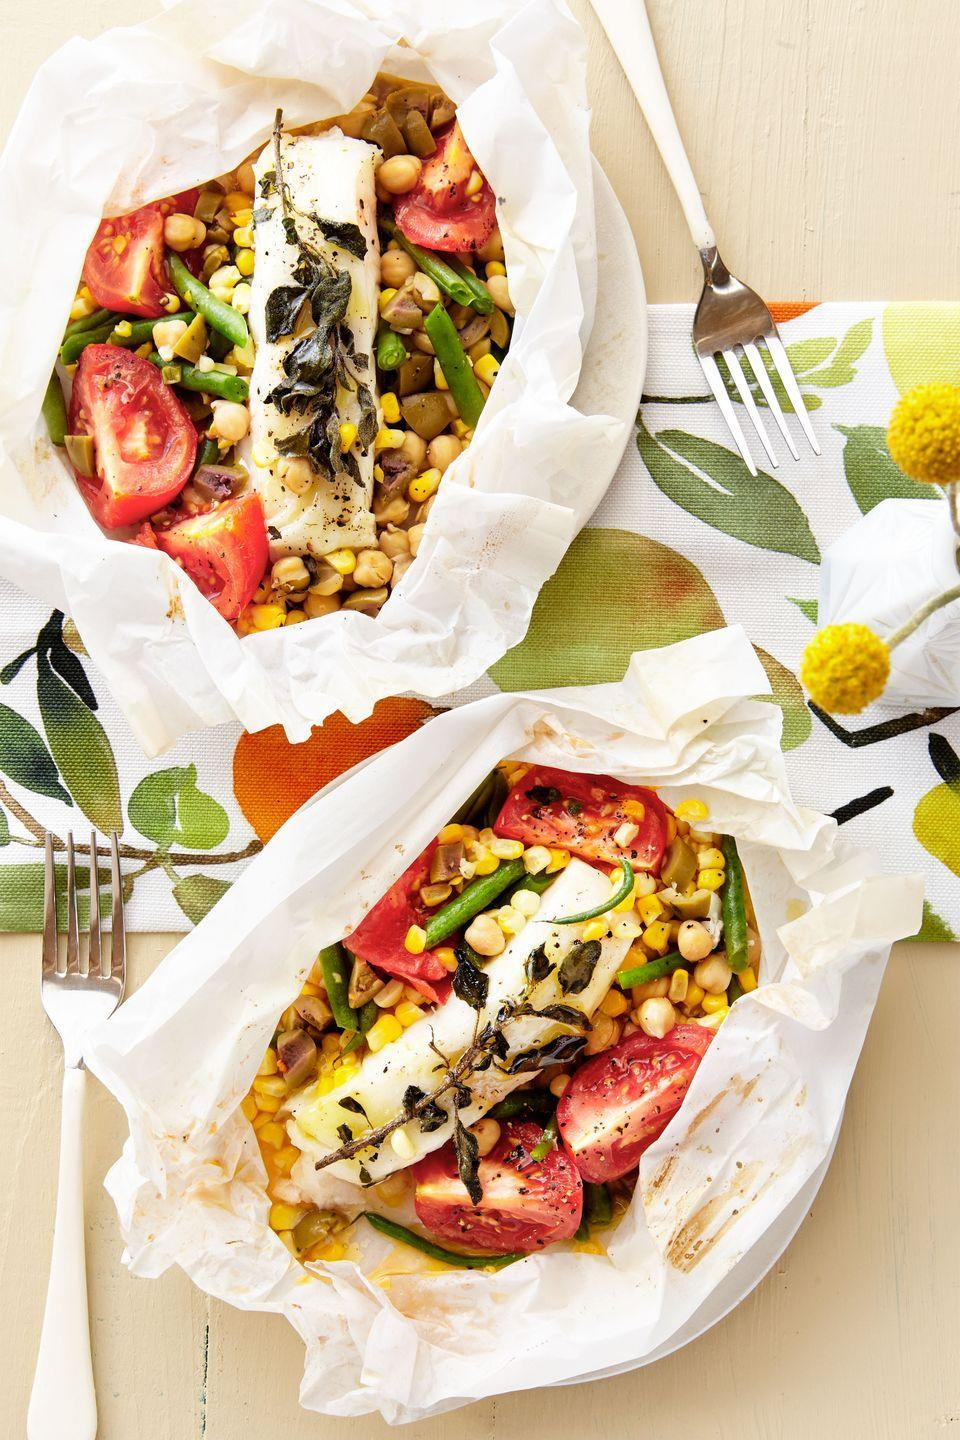 "<p>Get dinner on the table quick (and keep dirty dishes to a minimum) with these simple fish packets.</p><p><a href=""https://www.countryliving.com/food-drinks/recipes/a38076/bass-packets-with-tomato-corn-chickpeas-and-olives-recipe/"" rel=""nofollow noopener"" target=""_blank"" data-ylk=""slk:Get the recipe."" class=""link rapid-noclick-resp""><strong>Get the recipe.</strong></a></p>"